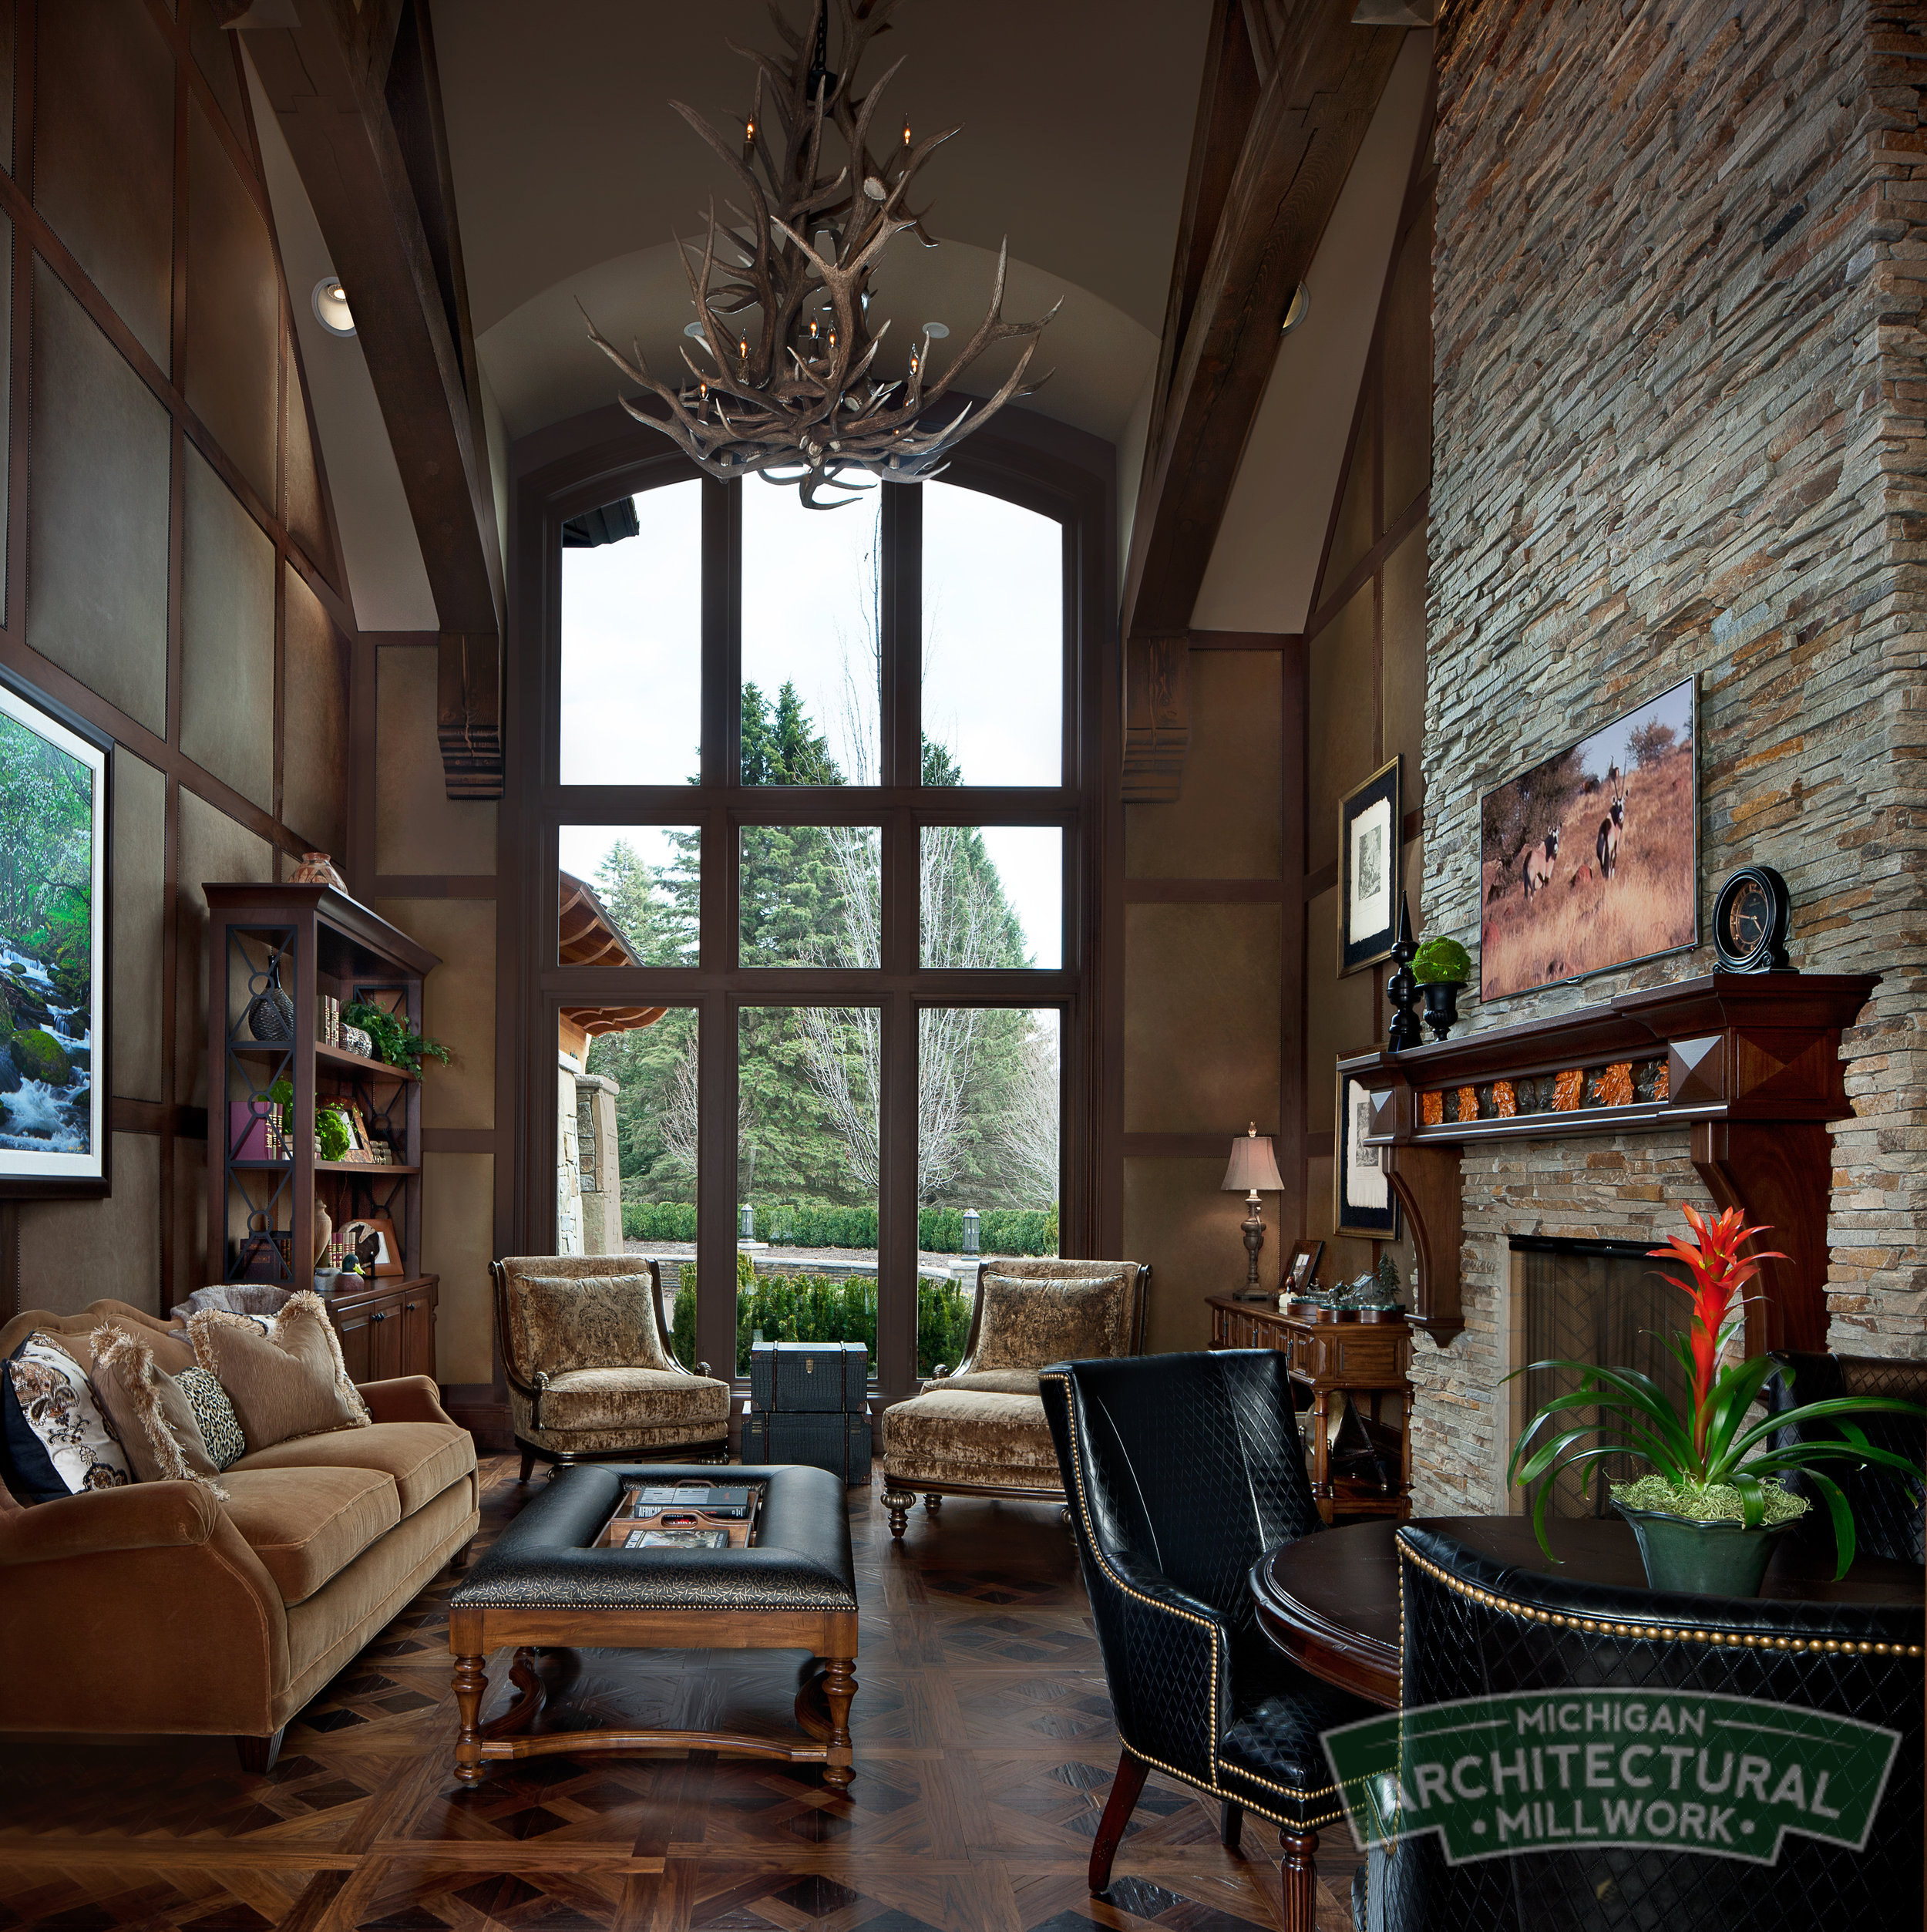 Michigan Architectural Millwork- Moulding and Millwork Photo-28.jpg